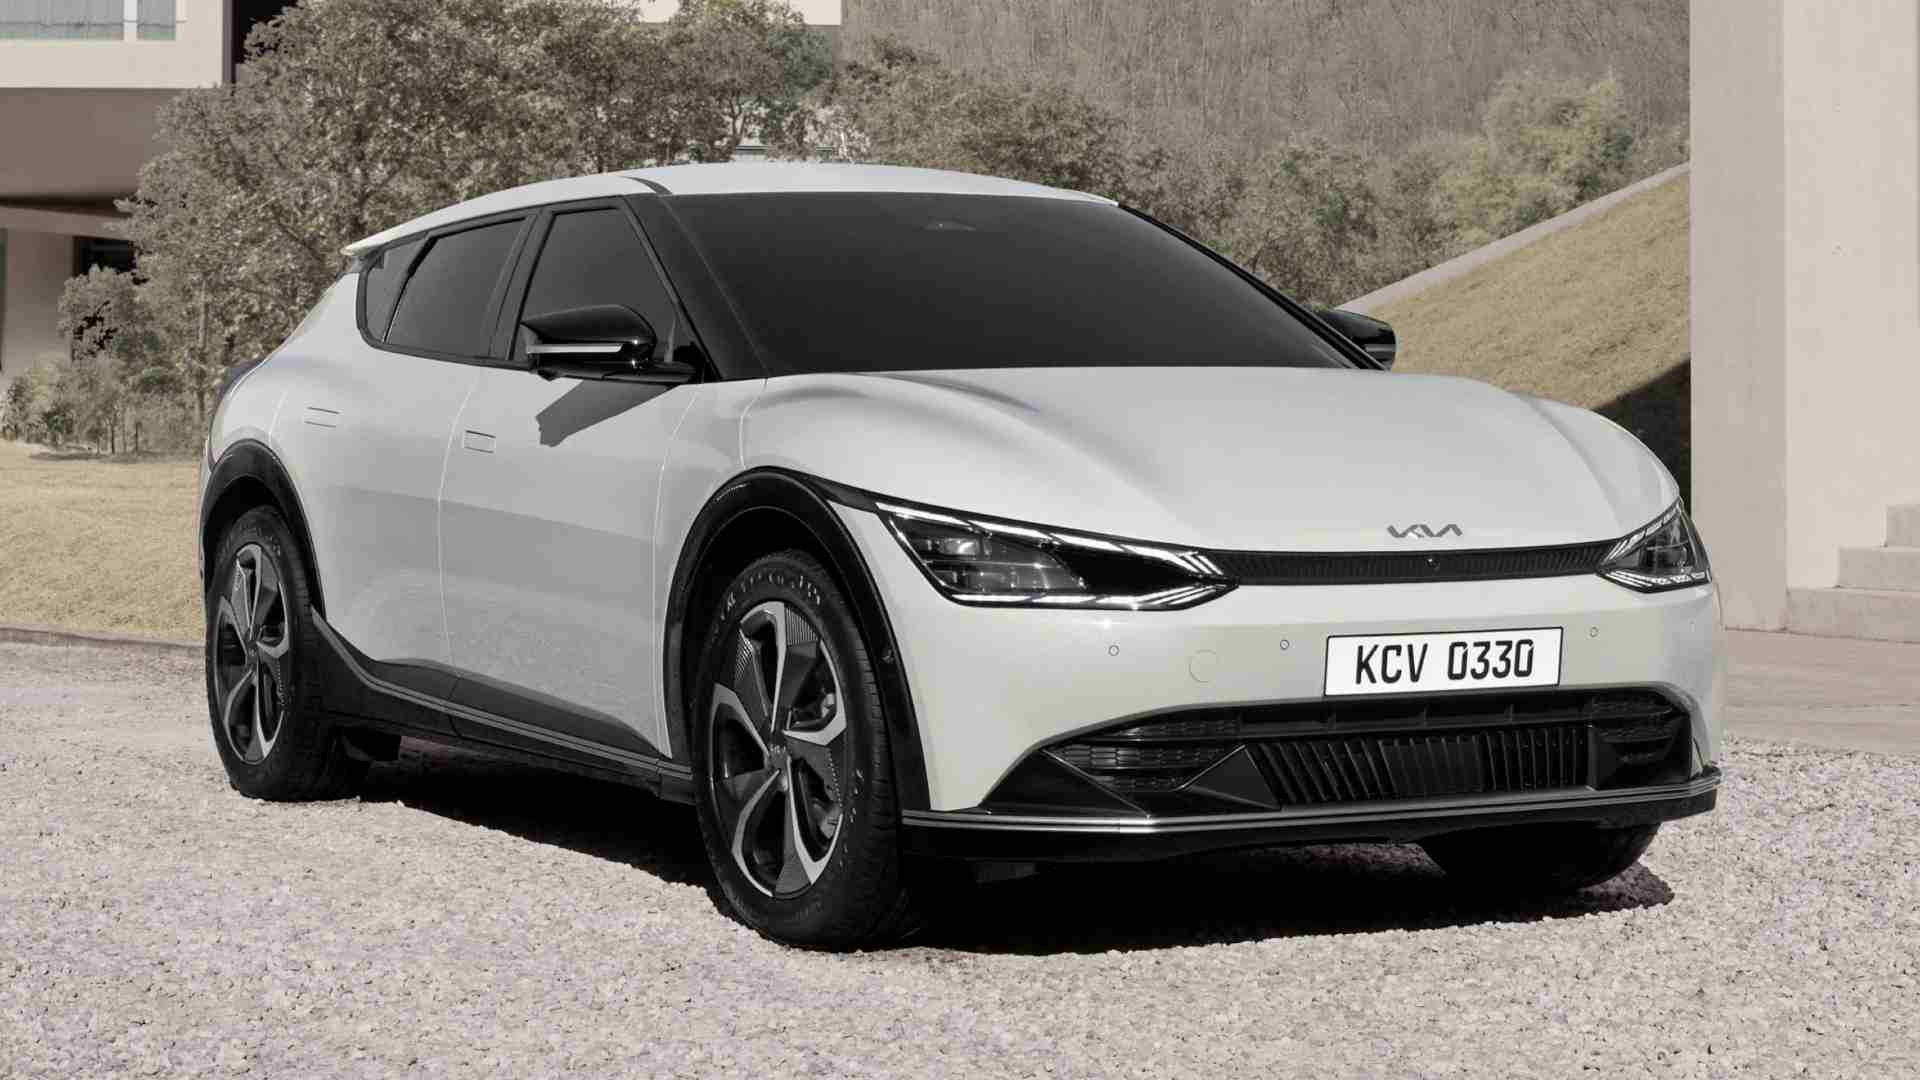 Kia EV6 is the brand's first dedicated all-electric vehicle, previewed ahead of world premiere- Technology News, Gadgetclock